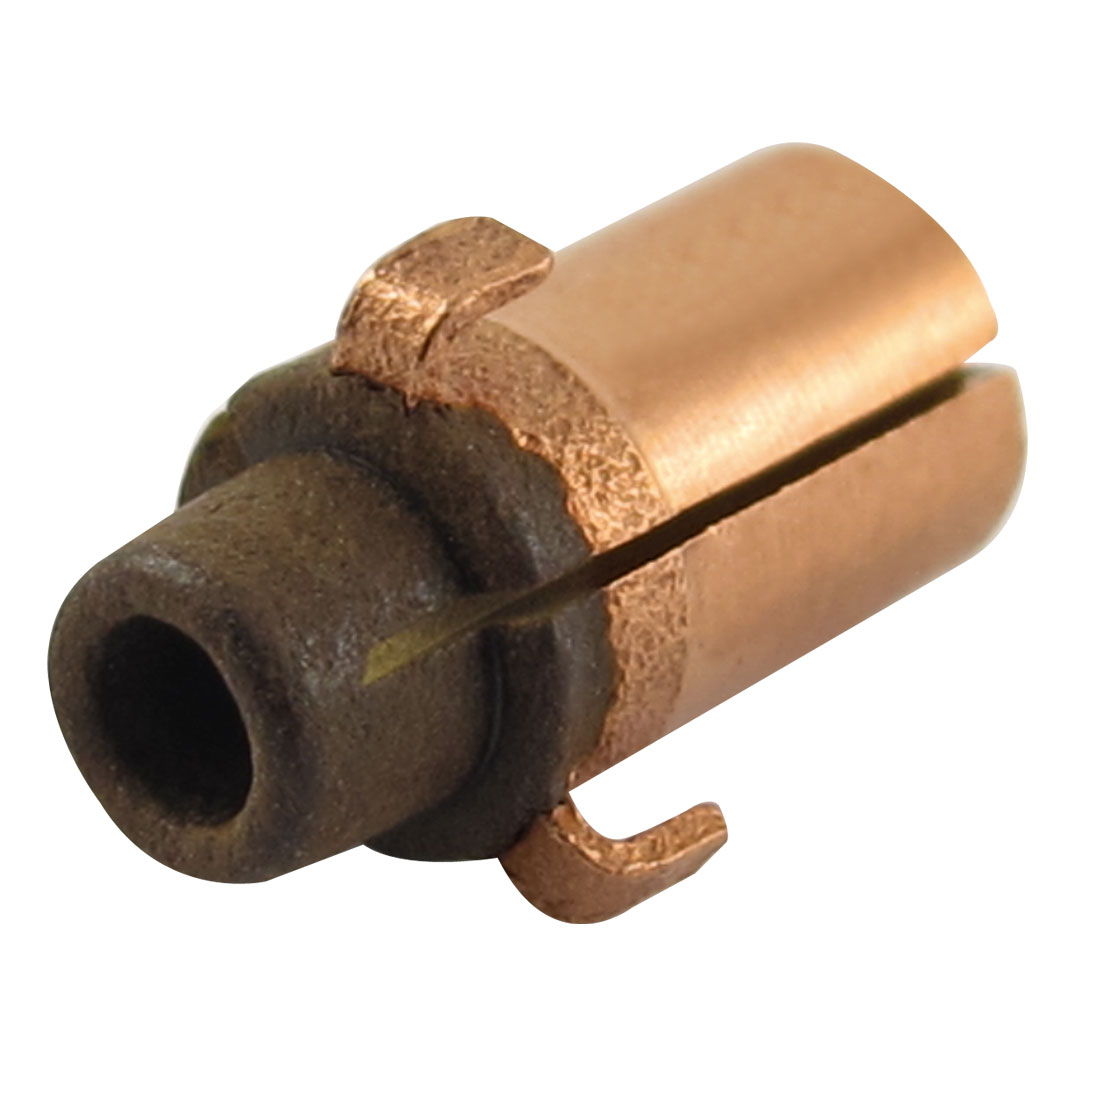 Power Tool Part Motor Commutator 3P Copper Bars 2.3mm x 5.7mm x 11.8mm